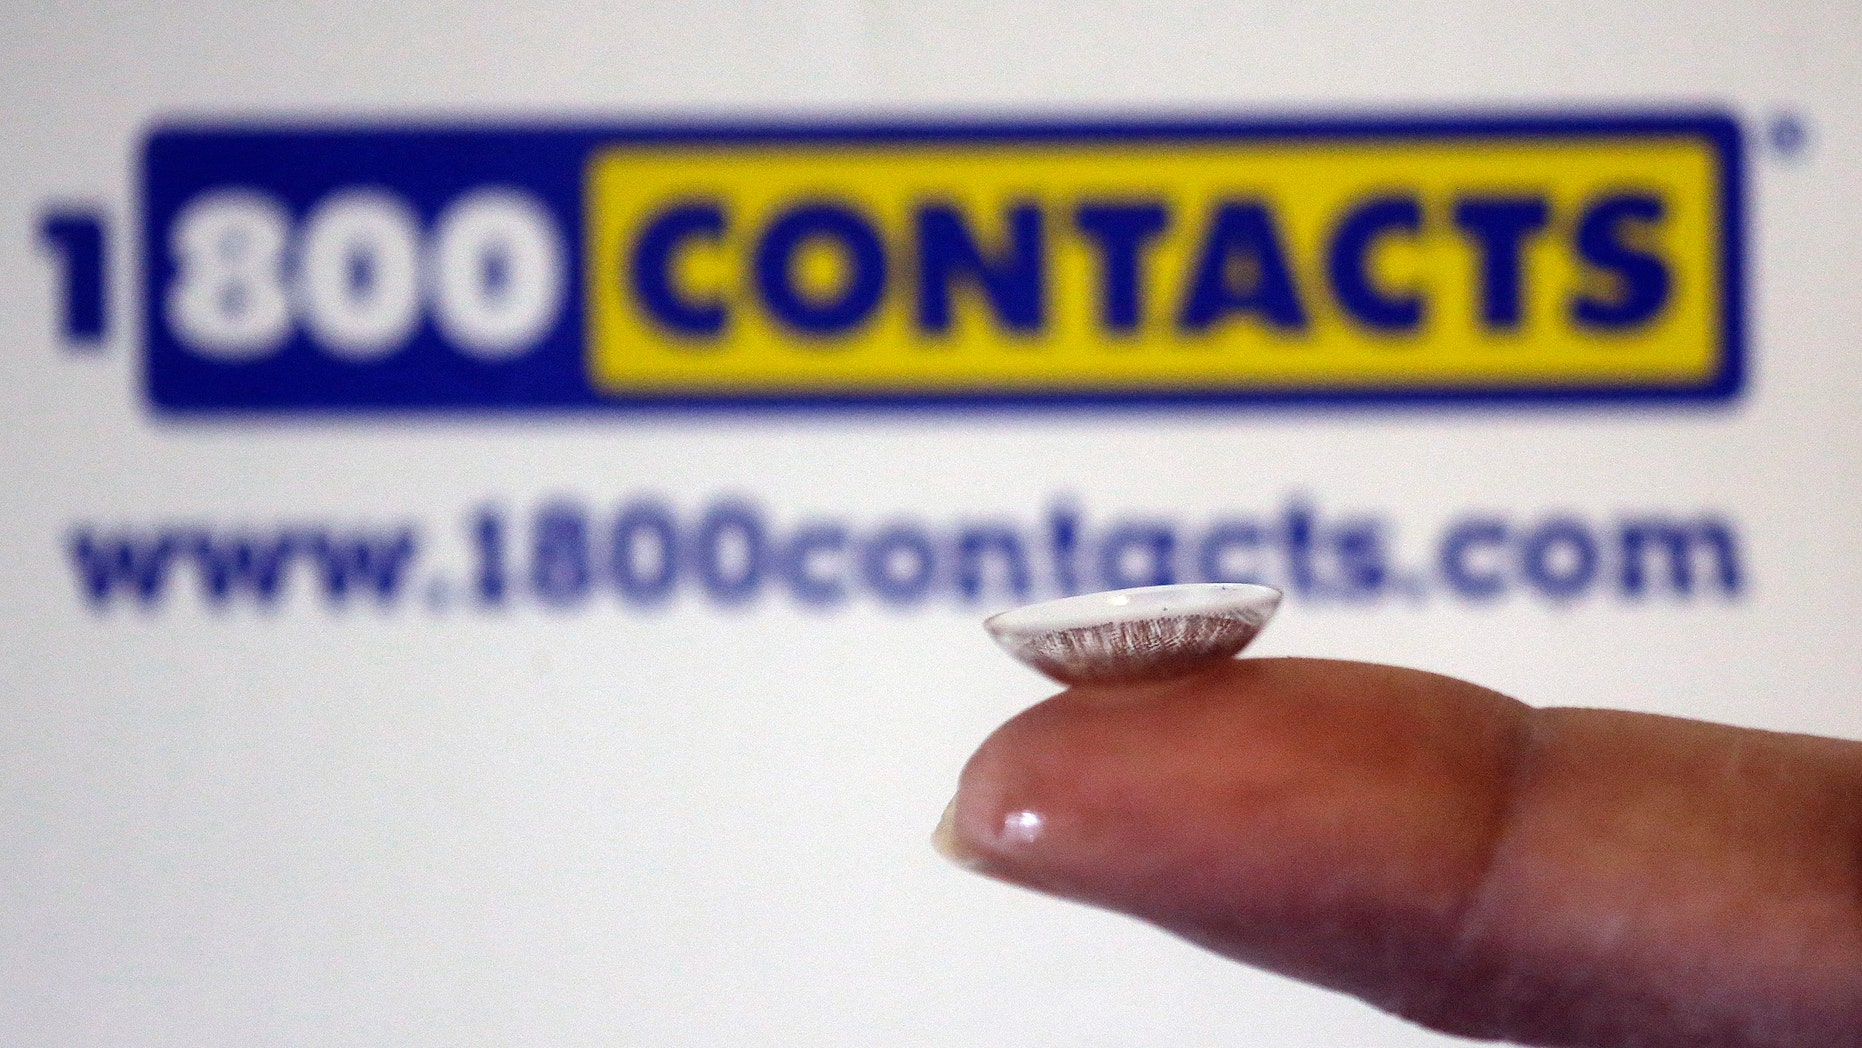 In this file photo, a contact lens is displayed in front of a 1-800-Contacts shipping box in Salt Lake City.